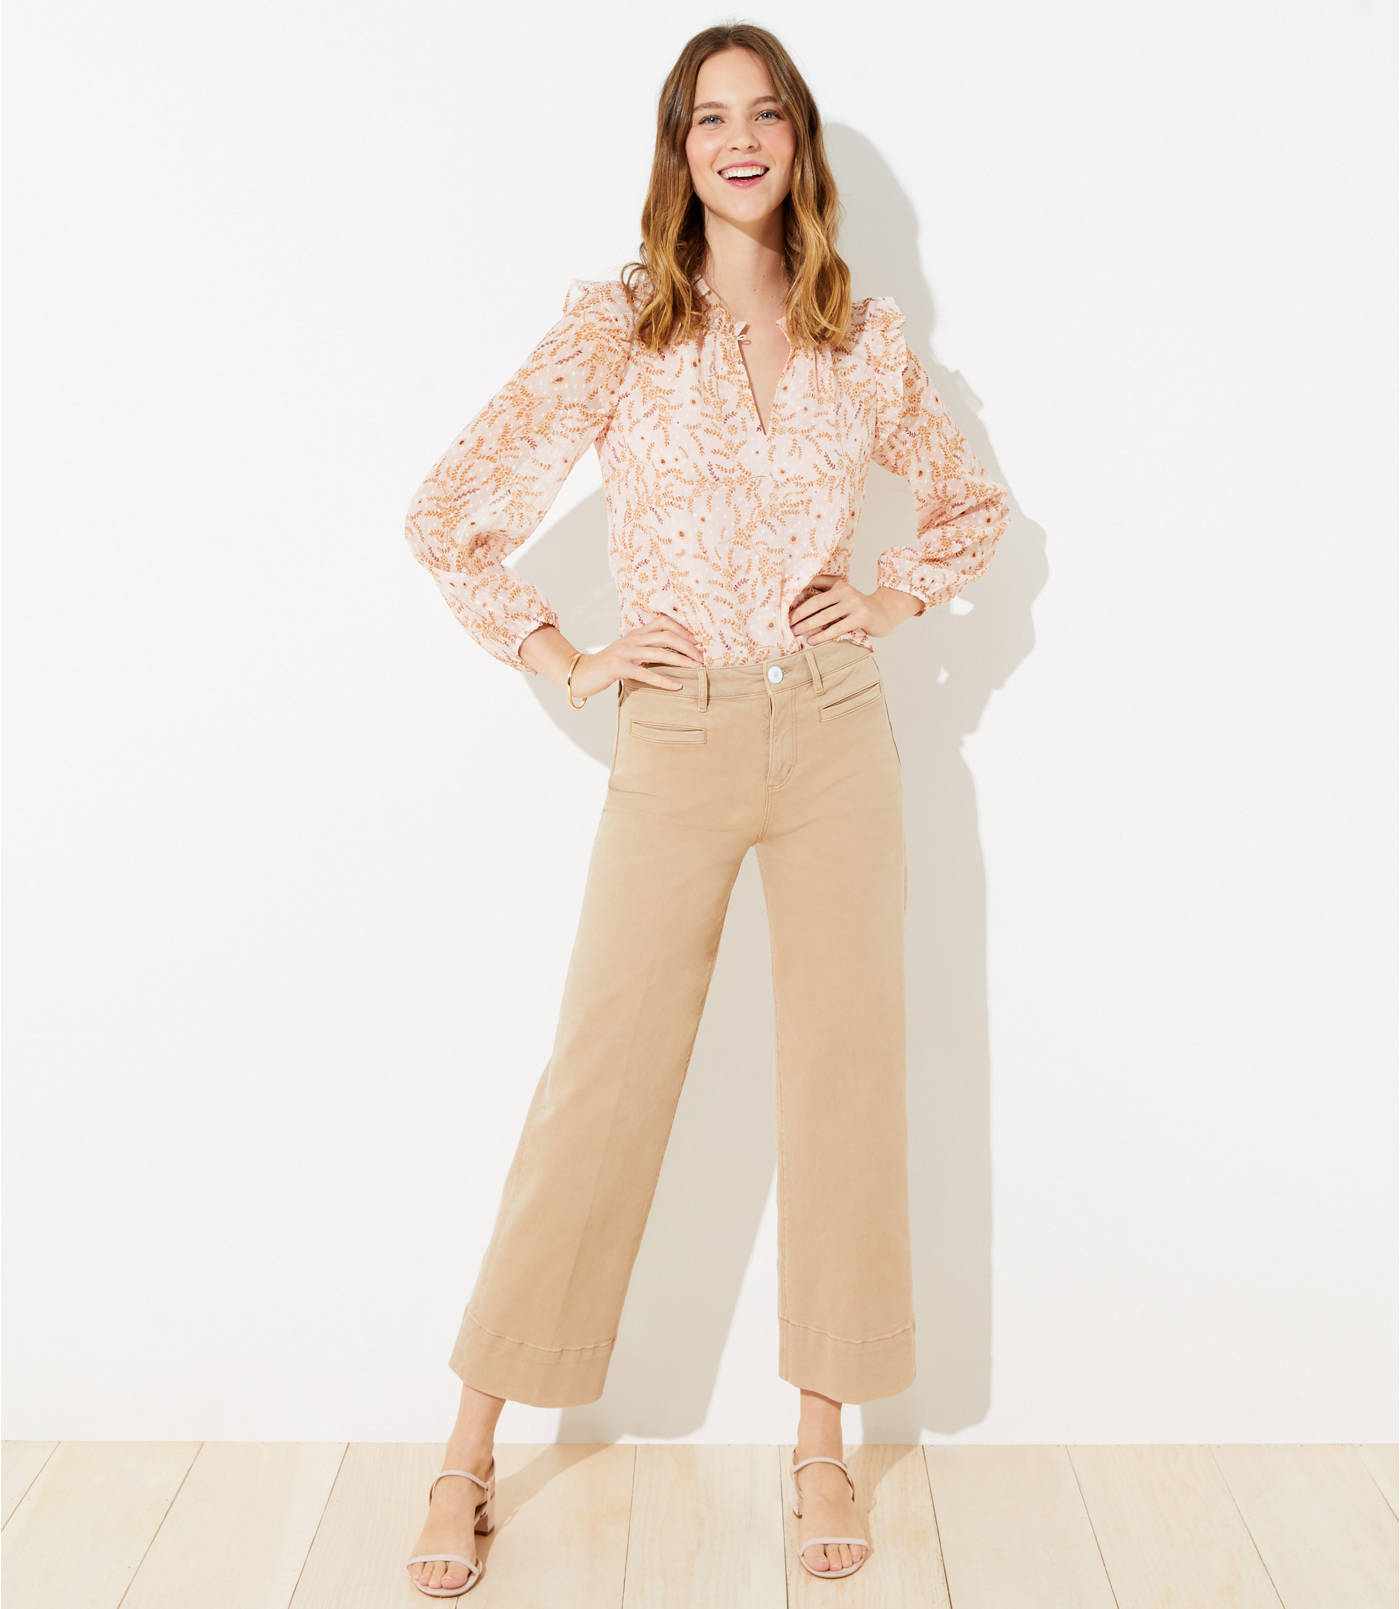 LOFT'S HUGE SUMMER SALE WOMEN'S CLOTHING AS LOW AS $8!